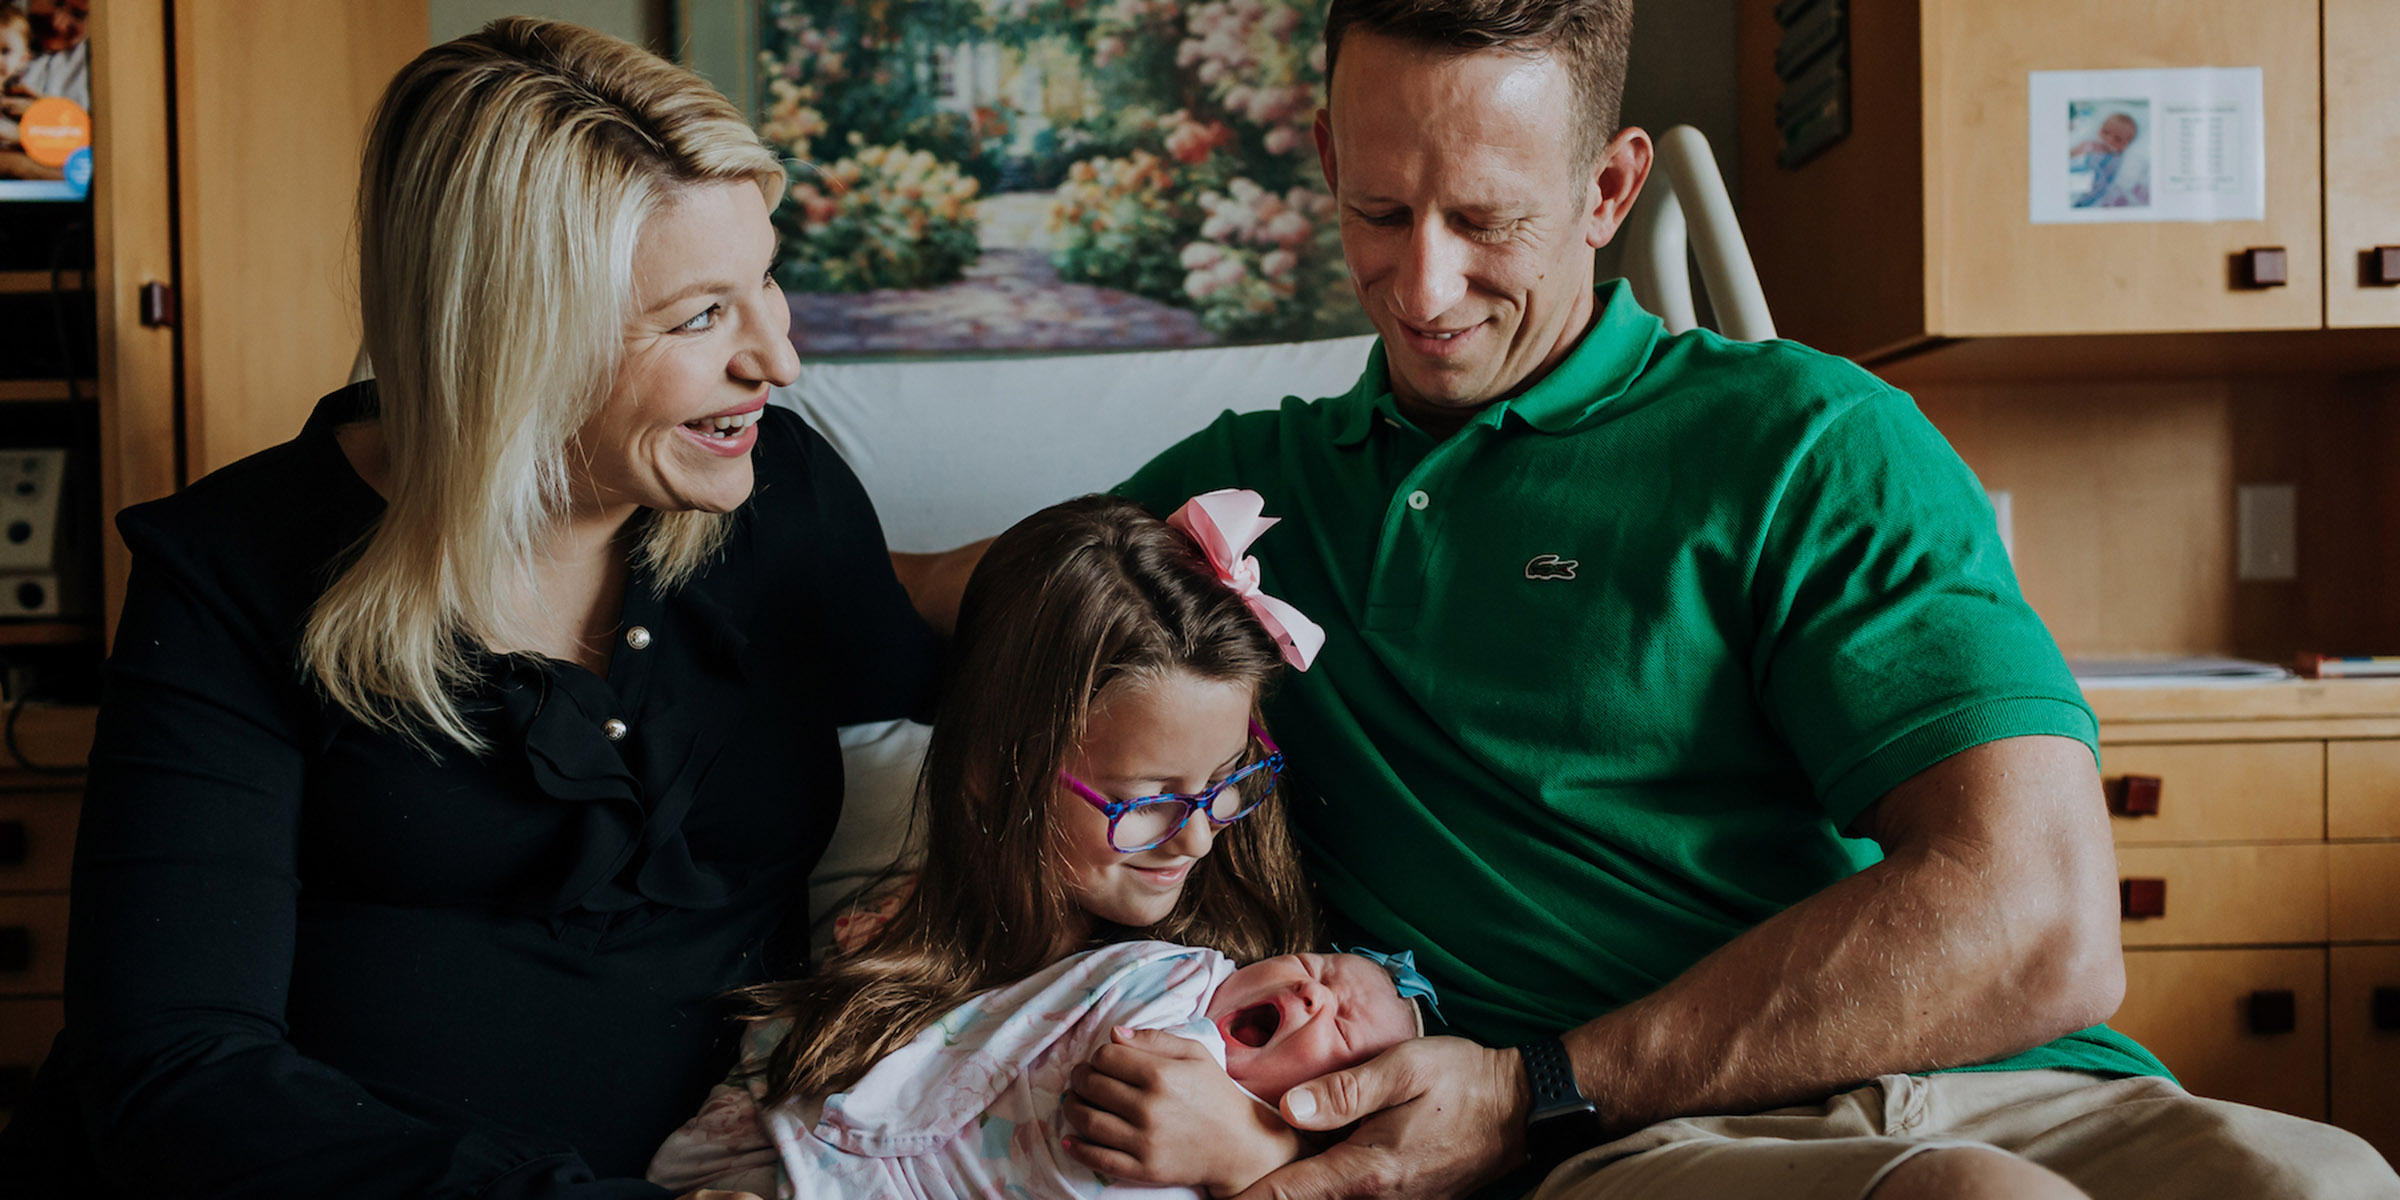 After devastating loss, family welcomes rainbow baby